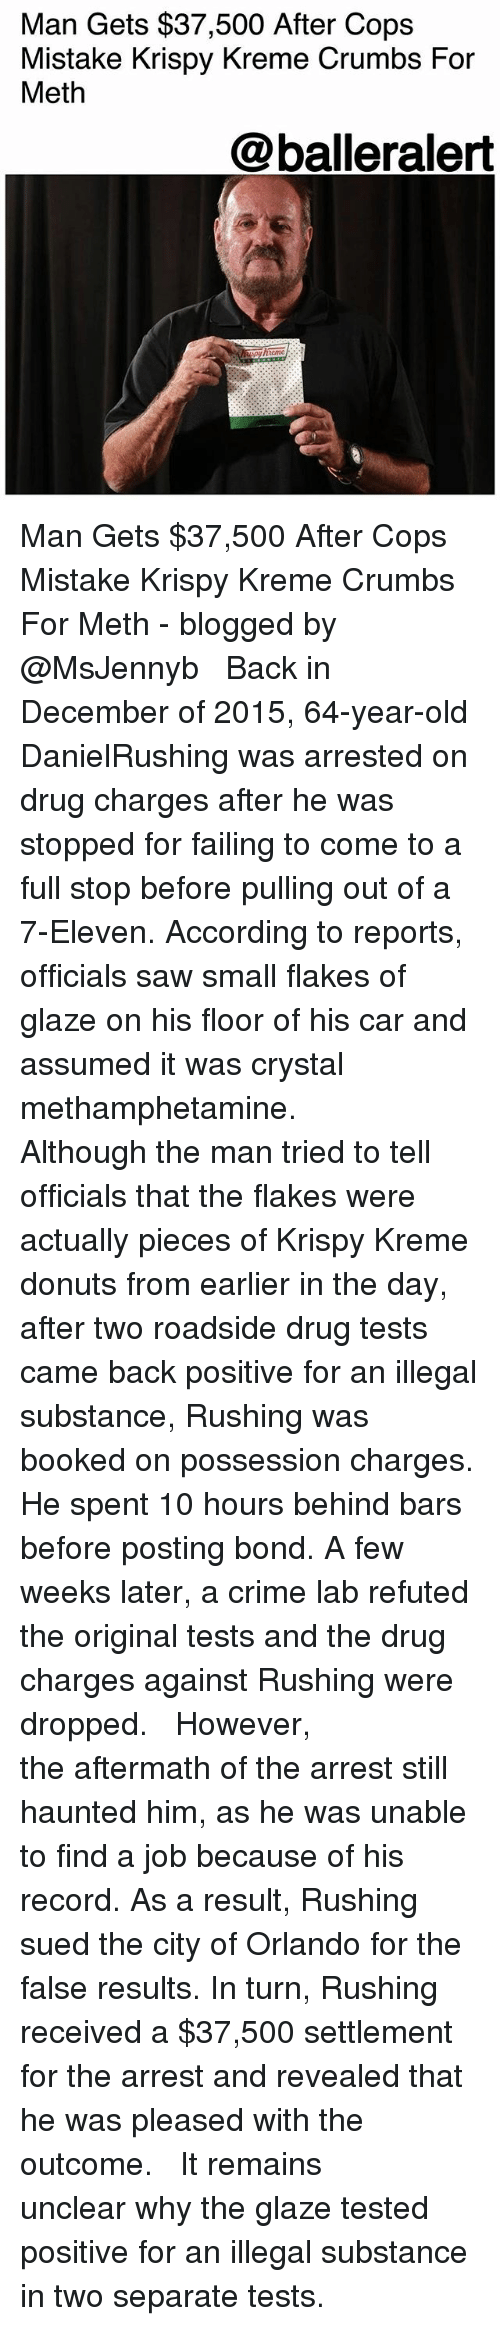 glaze: Man Gets $37,500 After Cops  Mistake Krispy Kreme Crumbs For  Meth  @balleralert Man Gets $37,500 After Cops Mistake Krispy Kreme Crumbs For Meth - blogged by @MsJennyb ⠀⠀⠀⠀⠀⠀⠀ ⠀⠀⠀⠀⠀⠀⠀ Back in December of 2015, 64-year-old DanielRushing was arrested on drug charges after he was stopped for failing to come to a full stop before pulling out of a 7-Eleven. According to reports, officials saw small flakes of glaze on his floor of his car and assumed it was crystal methamphetamine. ⠀⠀⠀⠀⠀⠀⠀ ⠀⠀⠀⠀⠀⠀⠀ Although the man tried to tell officials that the flakes were actually pieces of Krispy Kreme donuts from earlier in the day, after two roadside drug tests came back positive for an illegal substance, Rushing was booked on possession charges. He spent 10 hours behind bars before posting bond. A few weeks later, a crime lab refuted the original tests and the drug charges against Rushing were dropped. ⠀⠀⠀⠀⠀⠀⠀ ⠀⠀⠀⠀⠀⠀⠀ However, the aftermath of the arrest still haunted him, as he was unable to find a job because of his record. As a result, Rushing sued the city of Orlando for the false results. In turn, Rushing received a $37,500 settlement for the arrest and revealed that he was pleased with the outcome. ⠀⠀⠀⠀⠀⠀⠀ ⠀⠀⠀⠀⠀⠀⠀ It remains unclear why the glaze tested positive for an illegal substance in two separate tests.